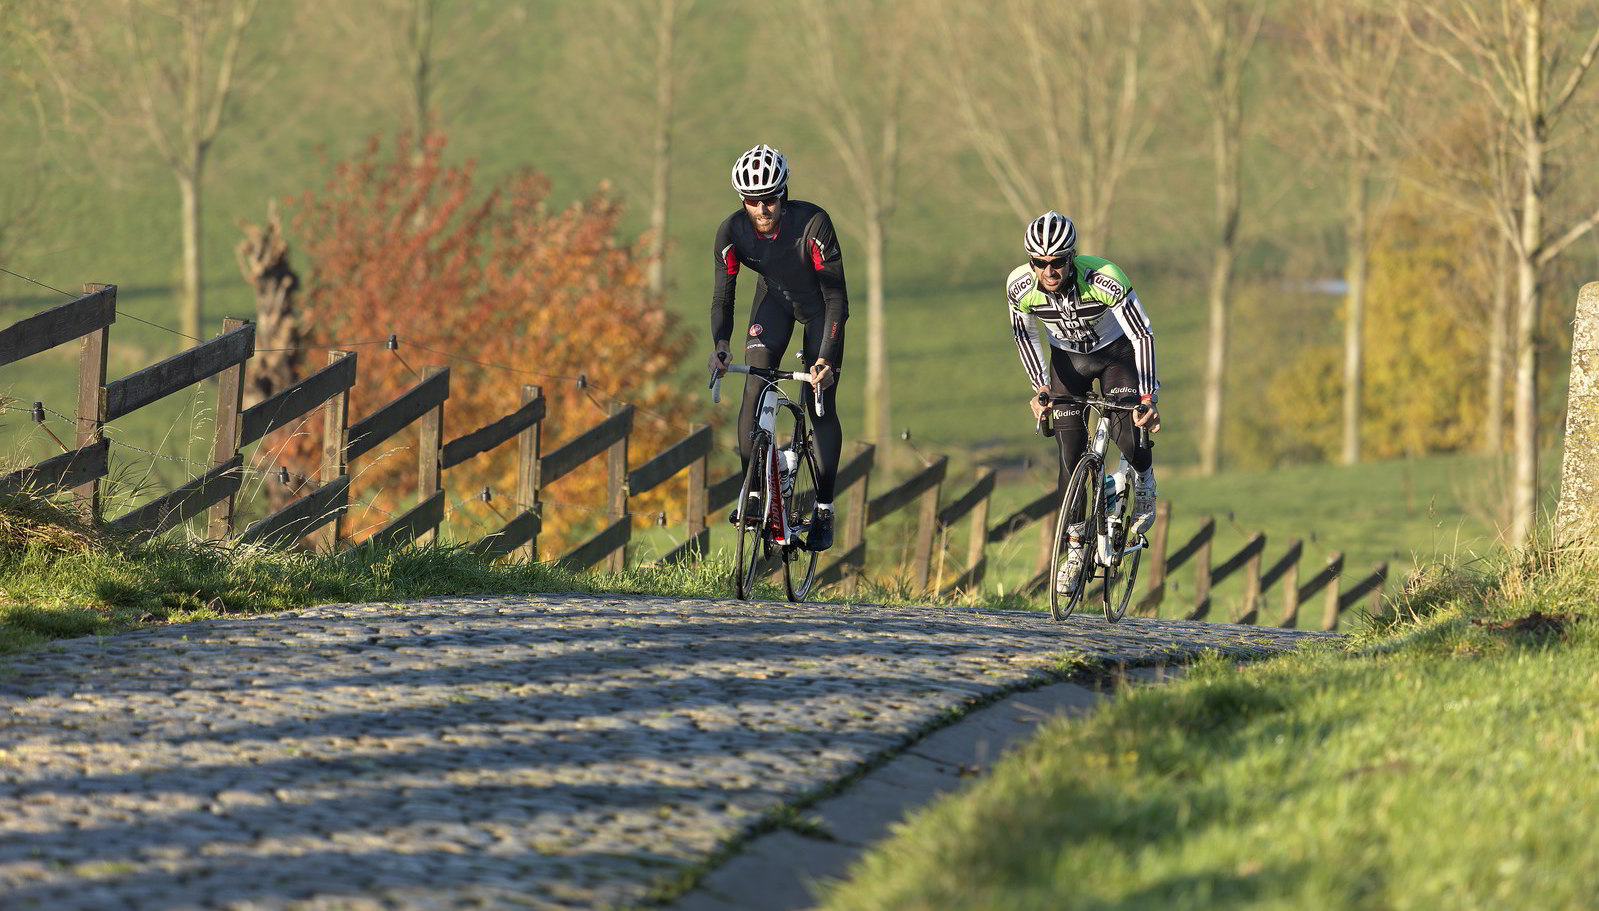 Cyclsits on cobblestones © Visitflanders